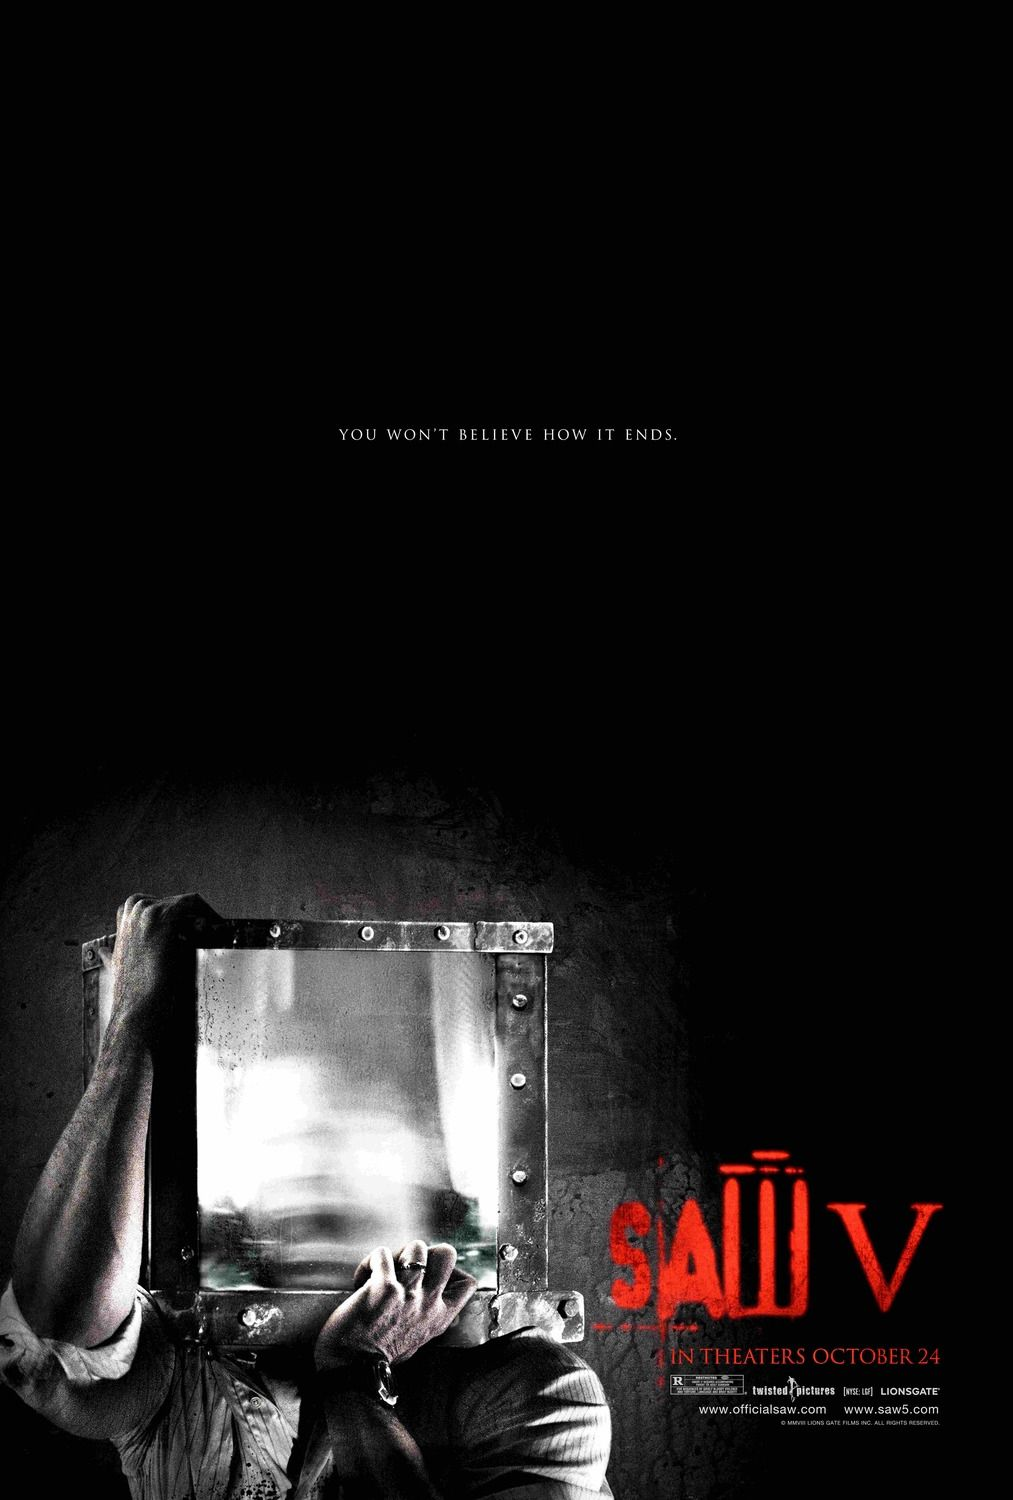 Pin By Robert Zelayandia On Movie Posters Saw V Movie Posters Human Photography